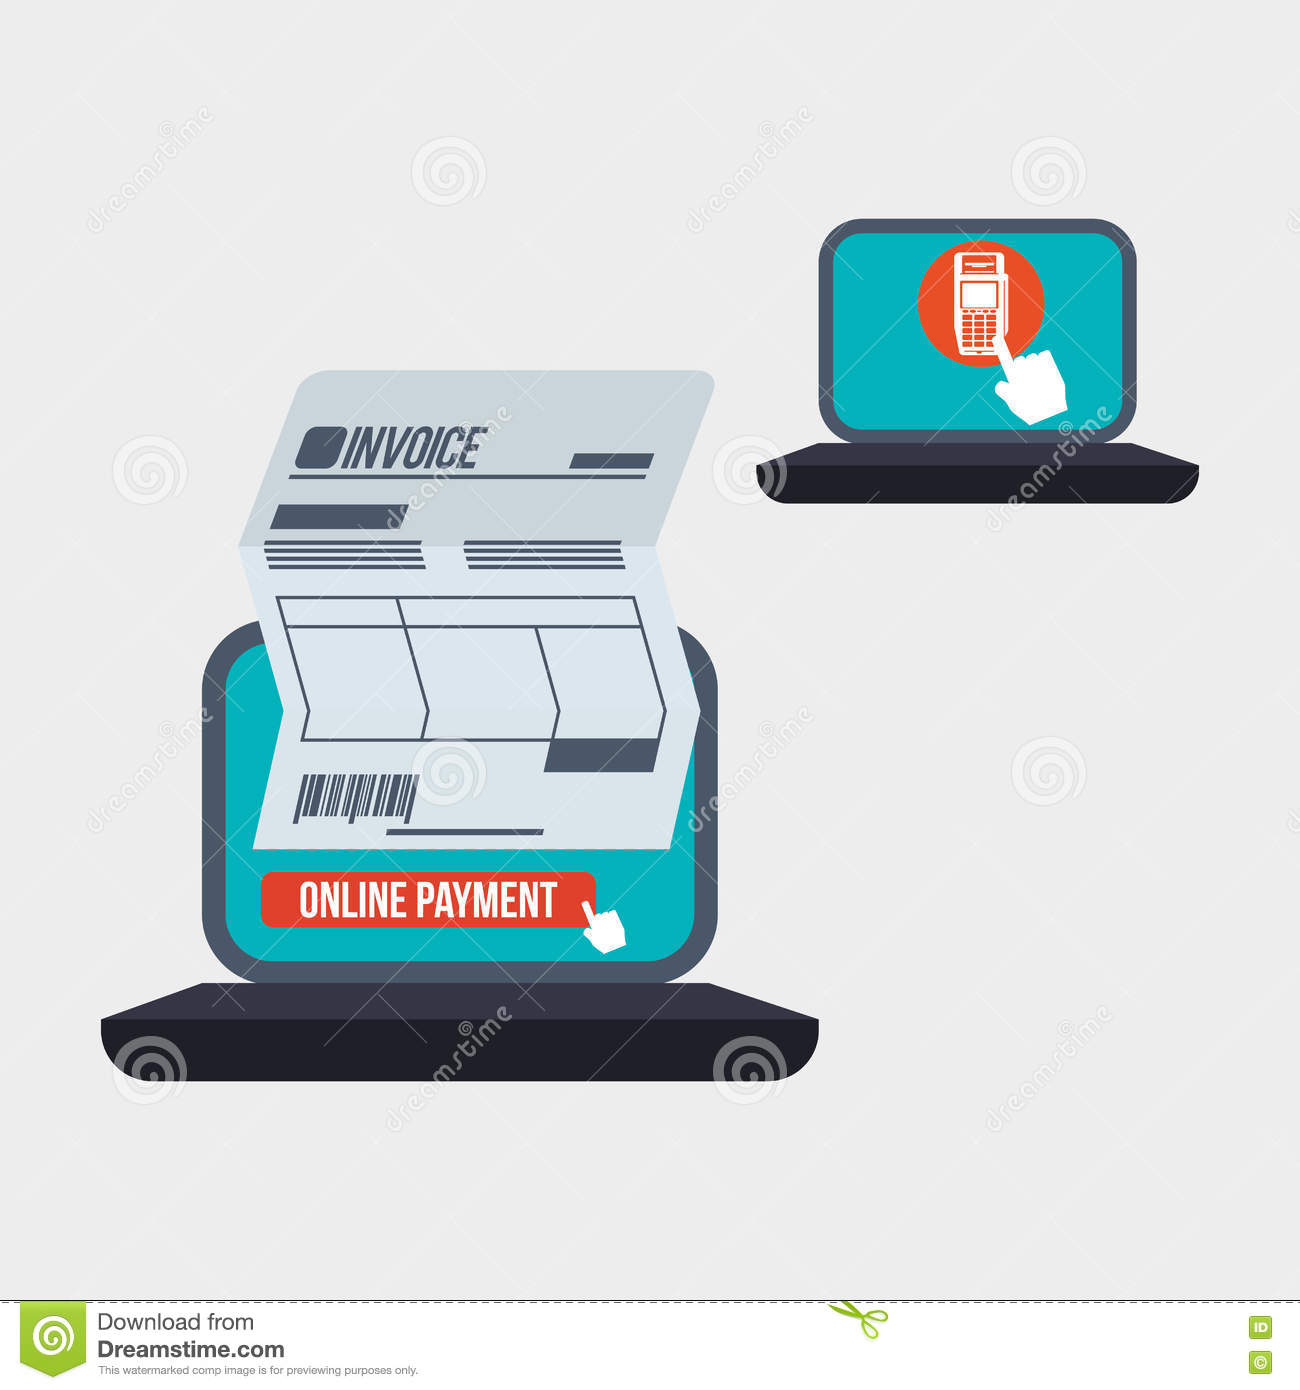 Invoice Design Online Payment Isolated Illustration Vector Stock